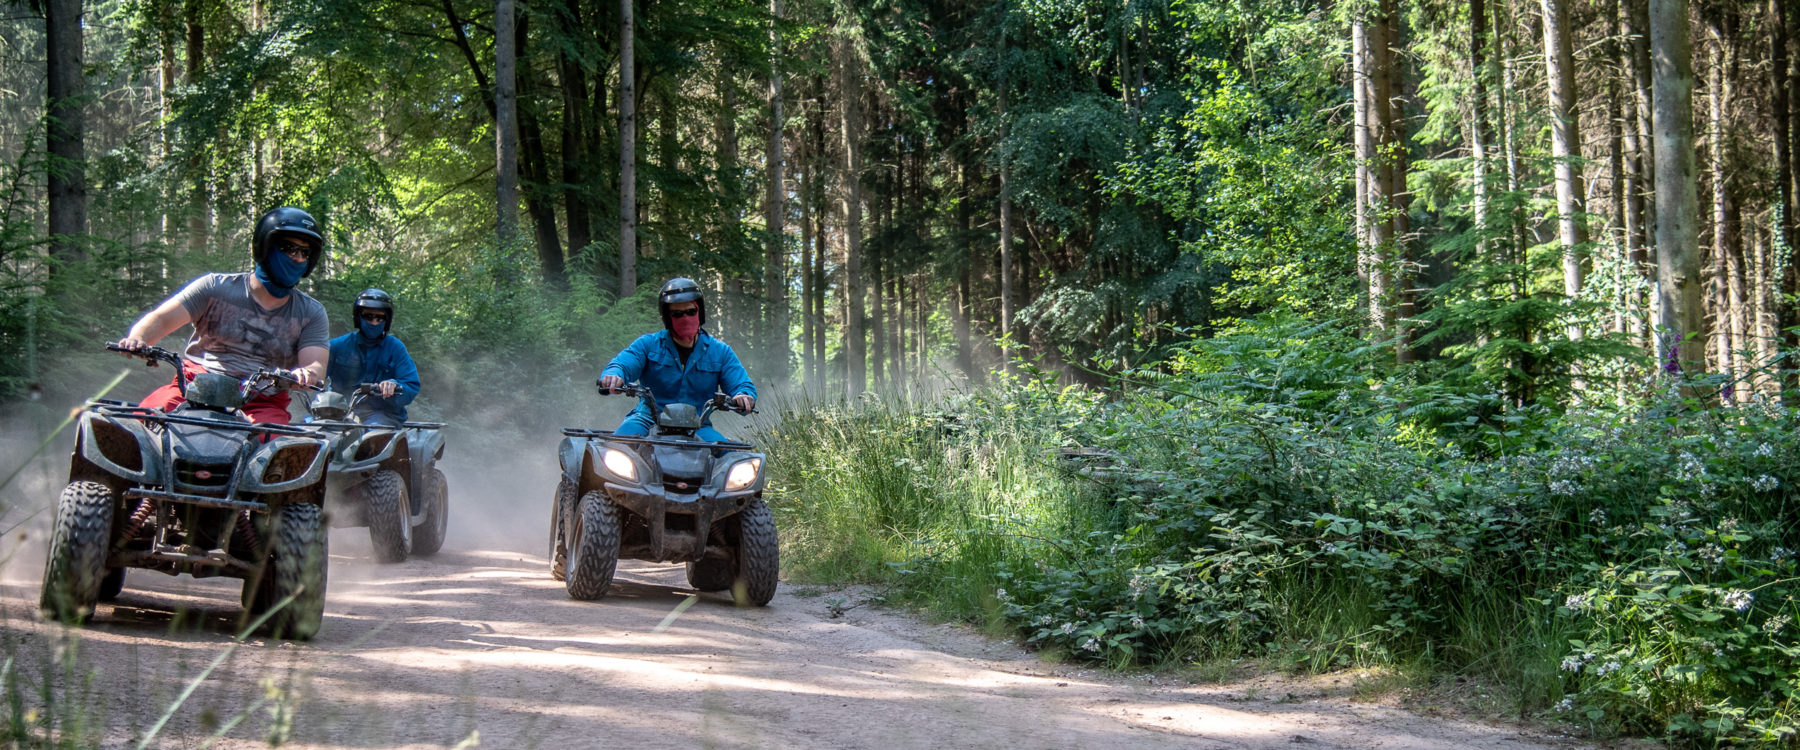 Quad Trekking Oaker Wood